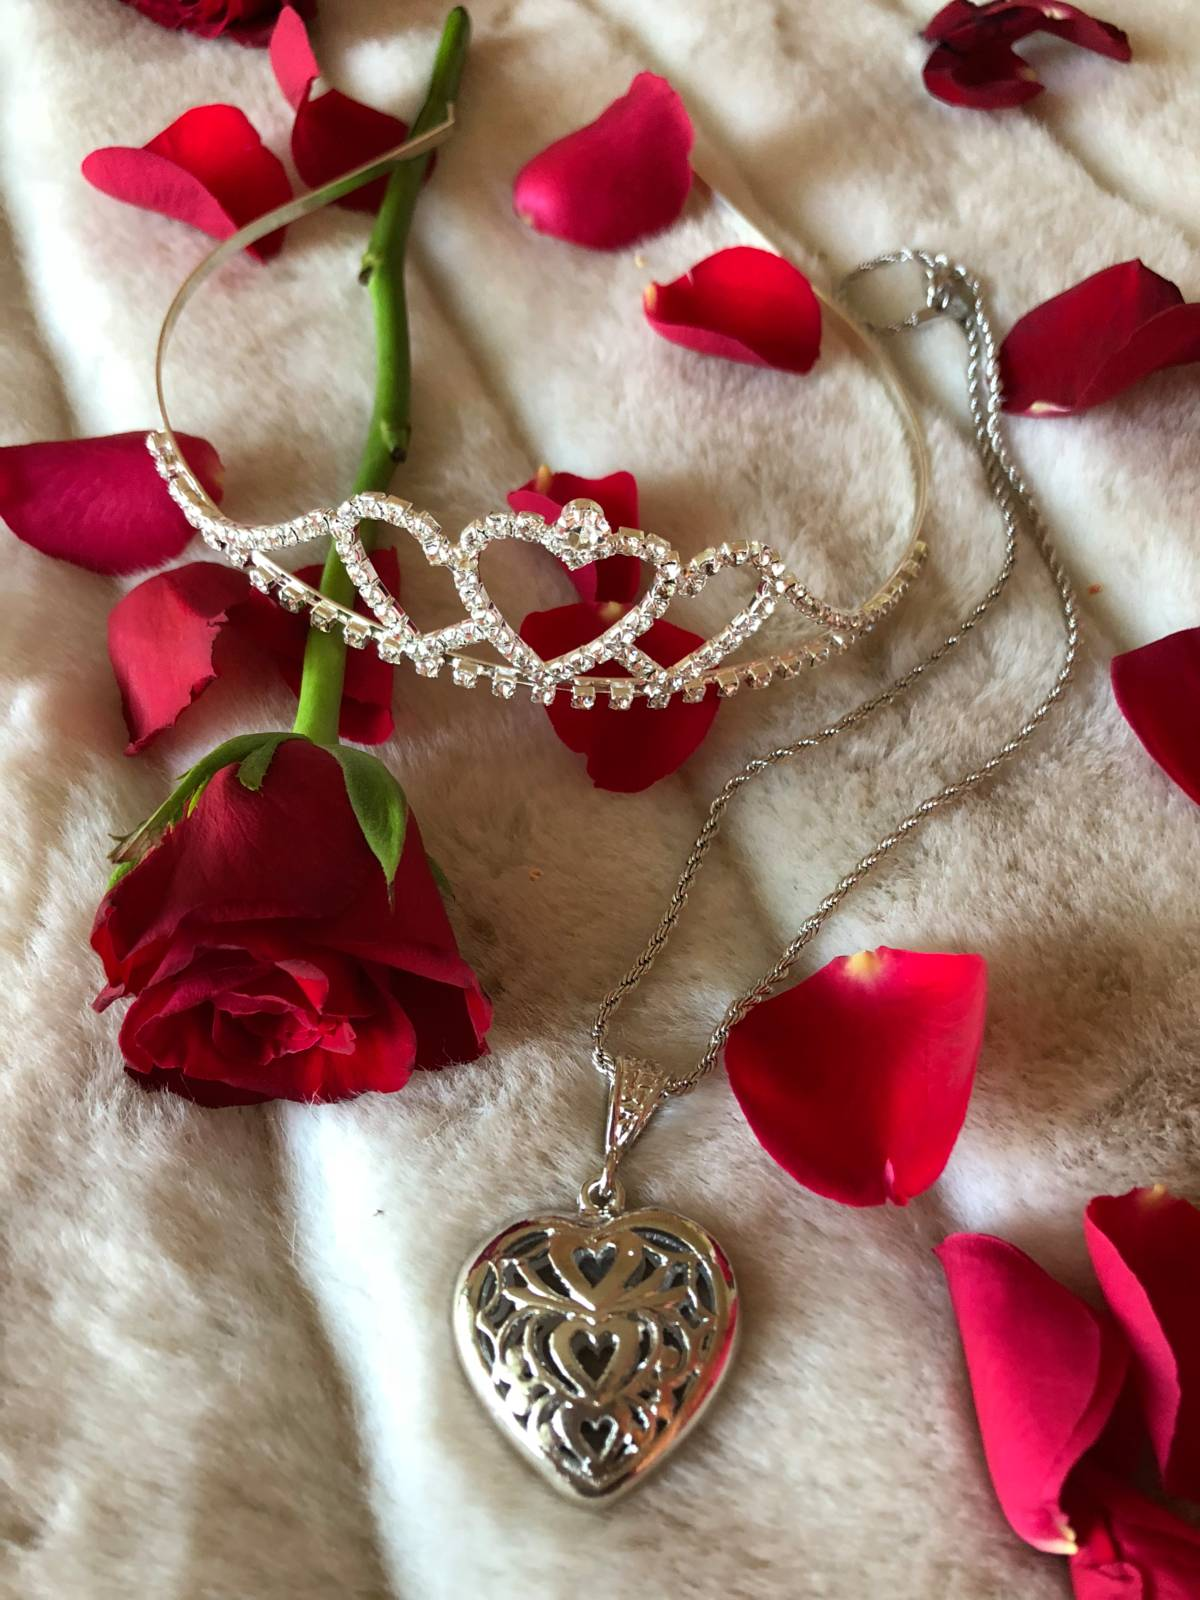 The Lace Heart Necklace Silver